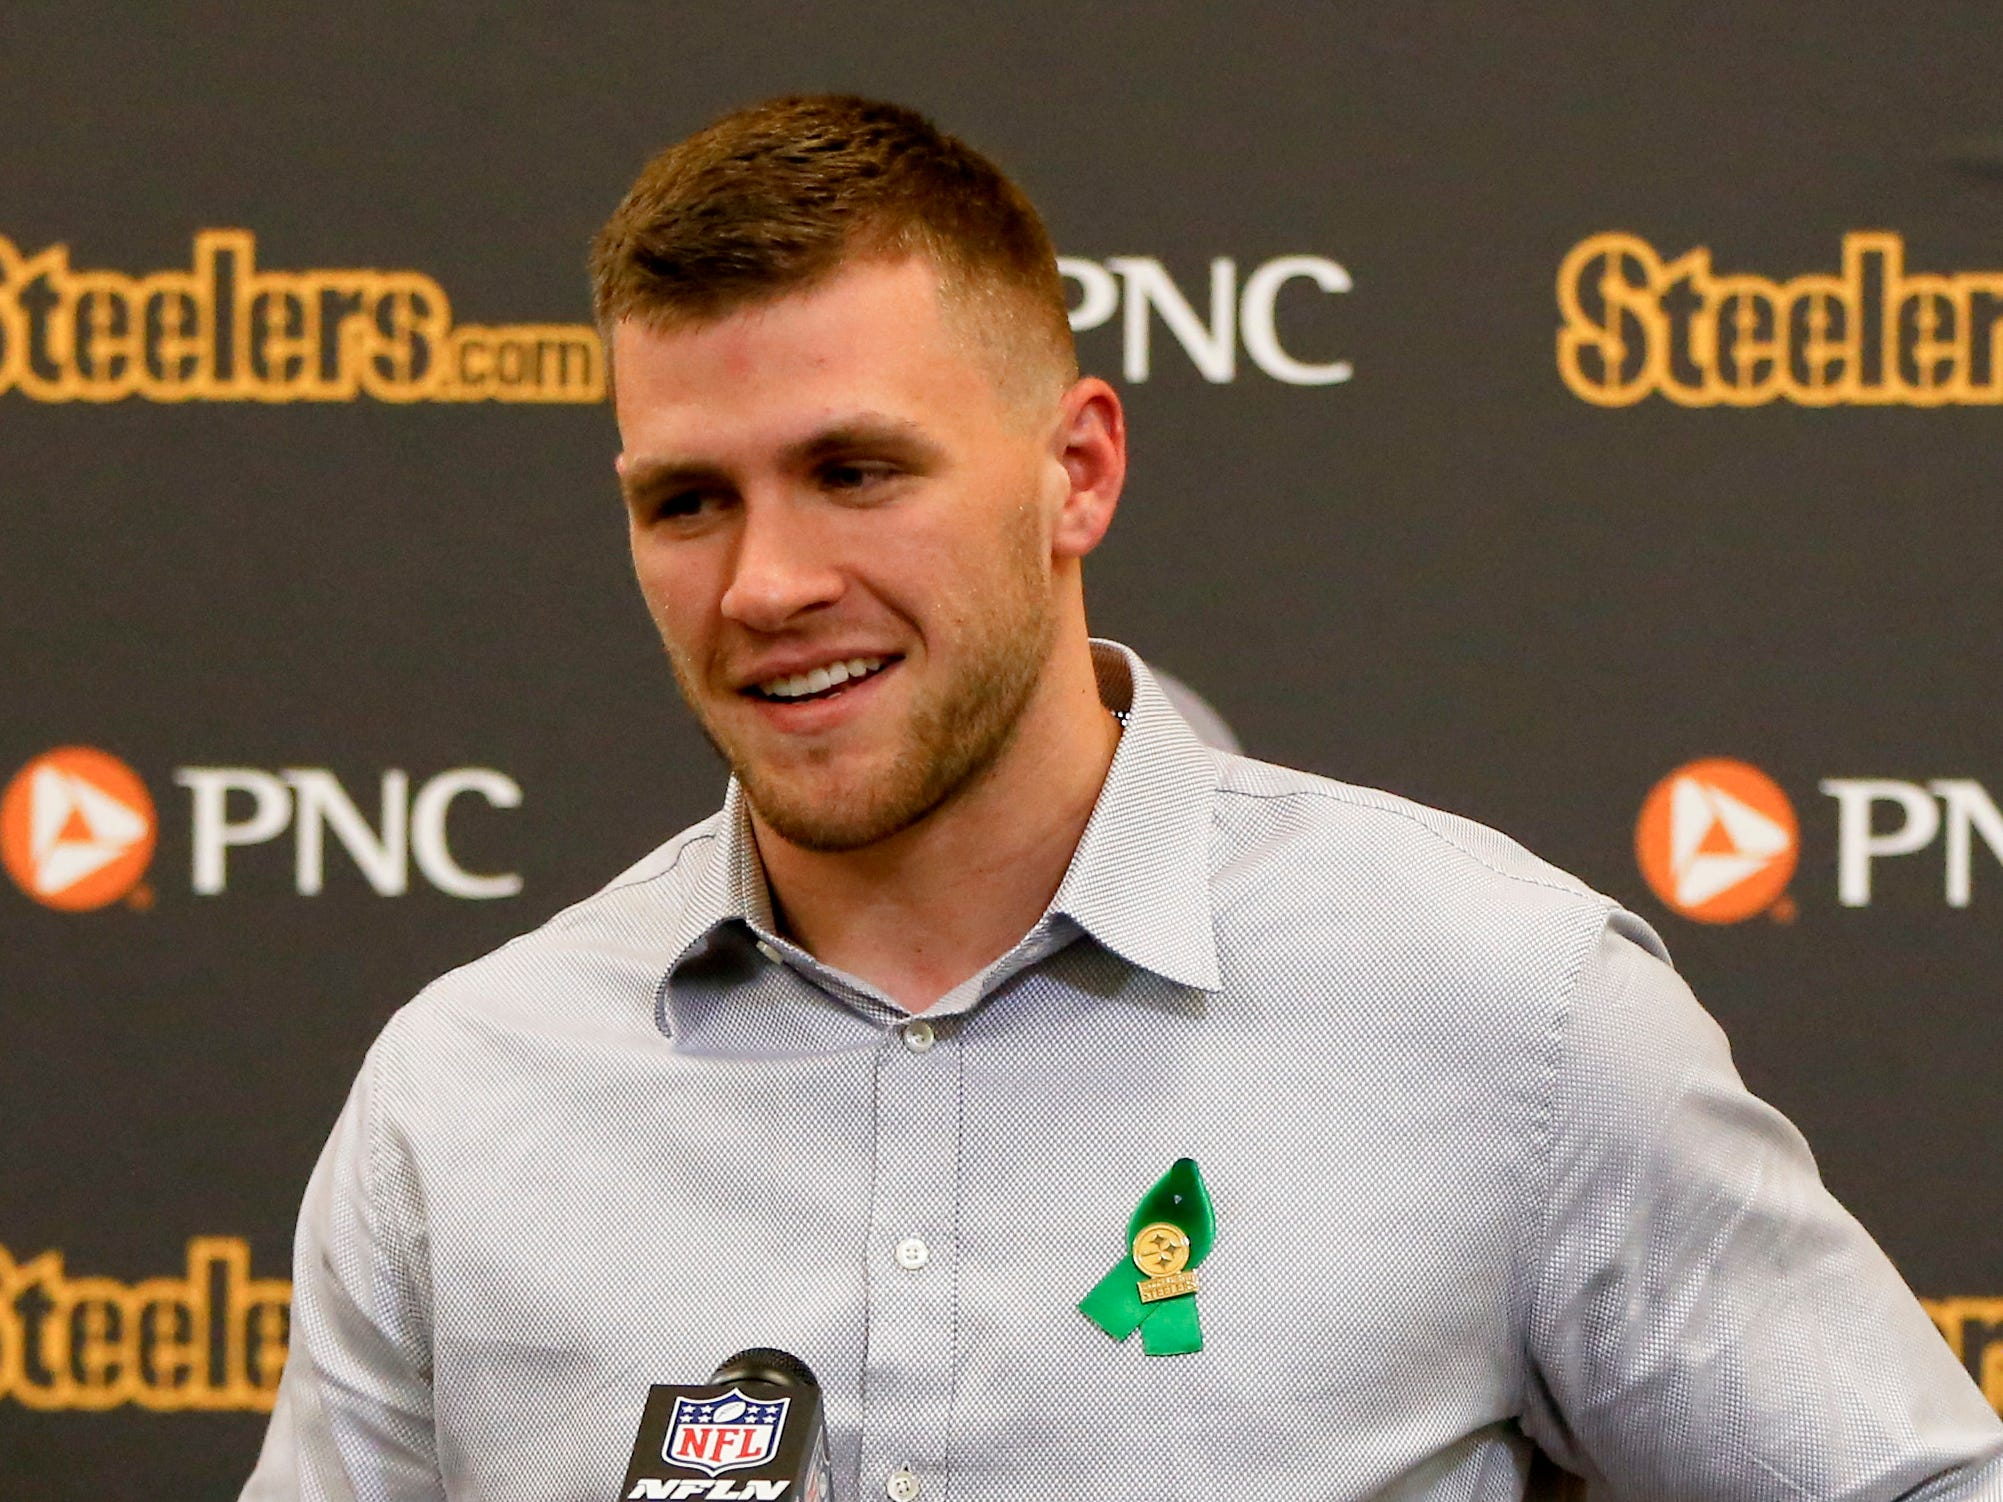 Pittsburgh Steelers first round pick T.J. Watt, a linebacker out of Wisconsin, speaks during a news conference Friday, April 28, 2017, in Pittsburgh.